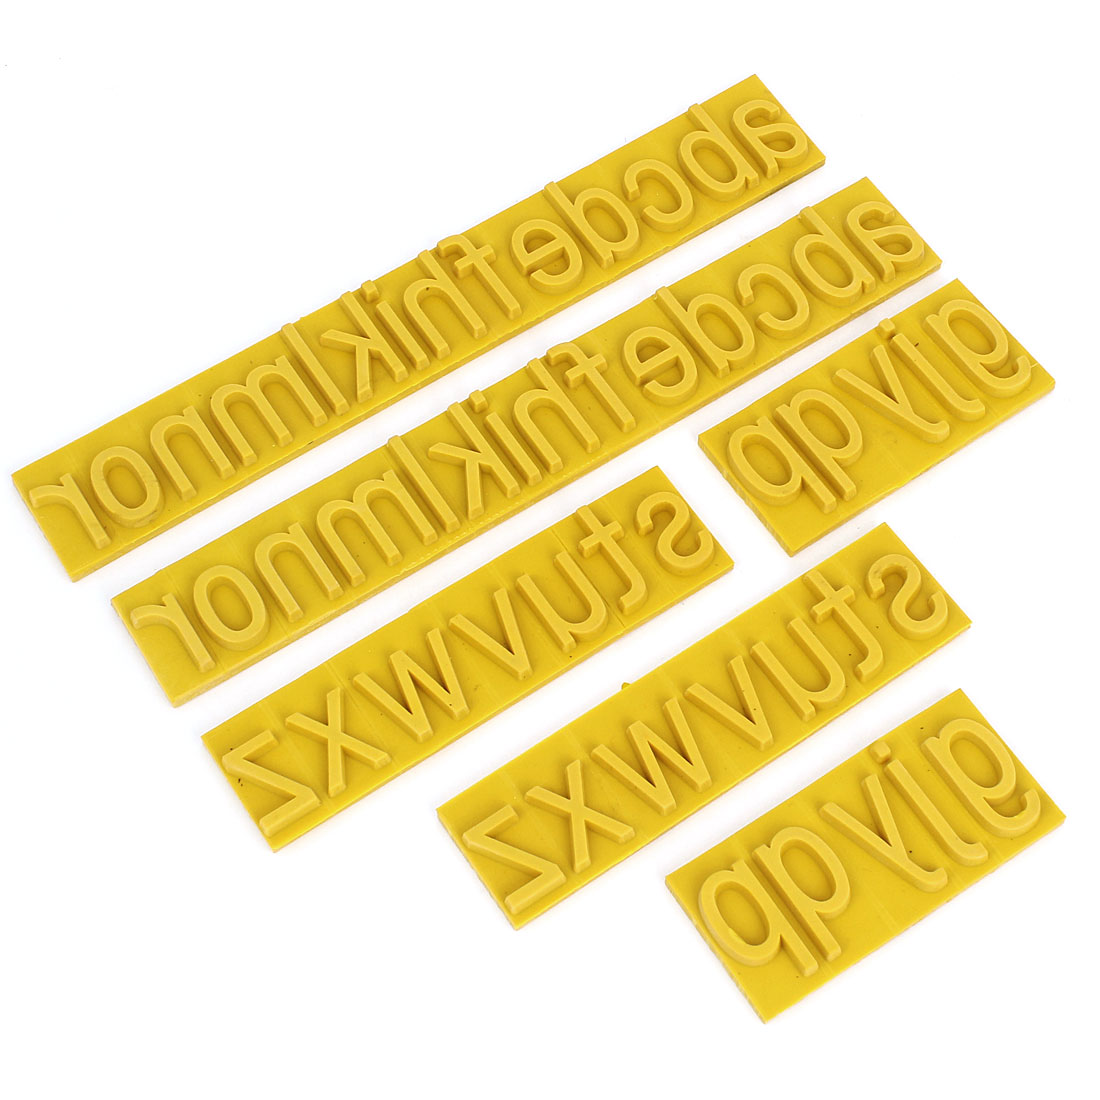 2 Sets Yellow 7mm Thick Letter Rubber Stamp Coder for Ink Stamping Machine